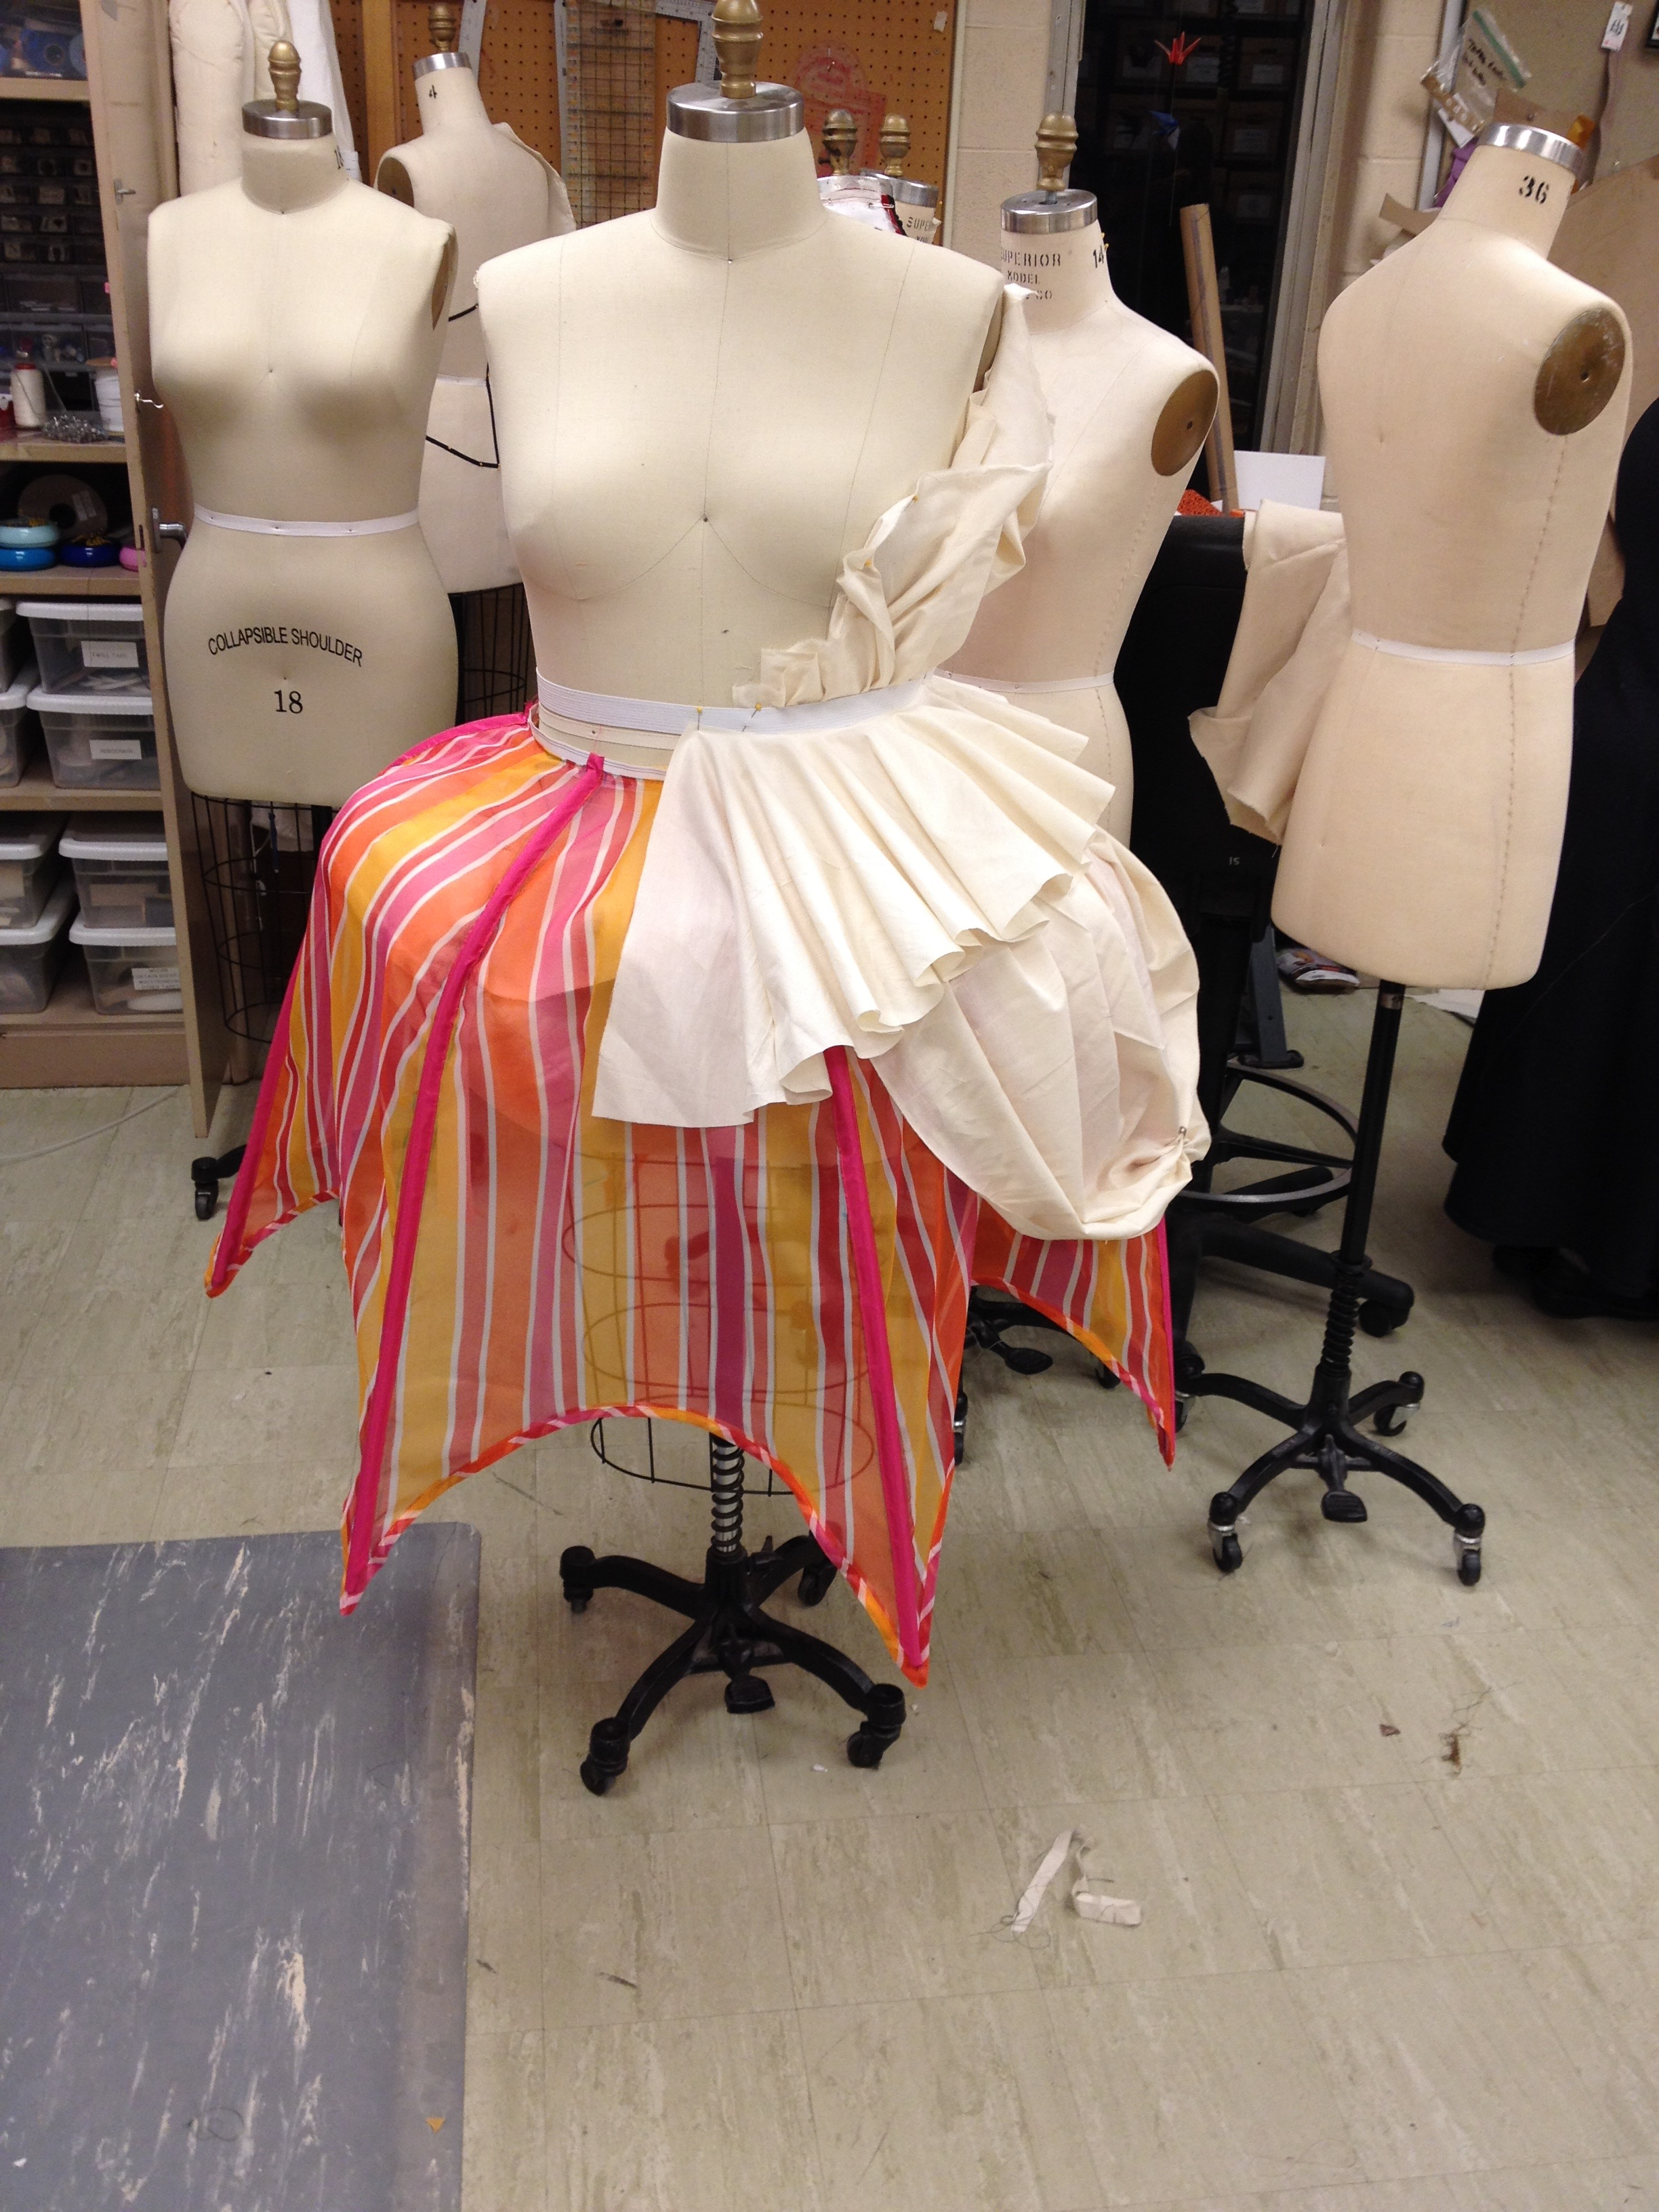 Drape of over skirts